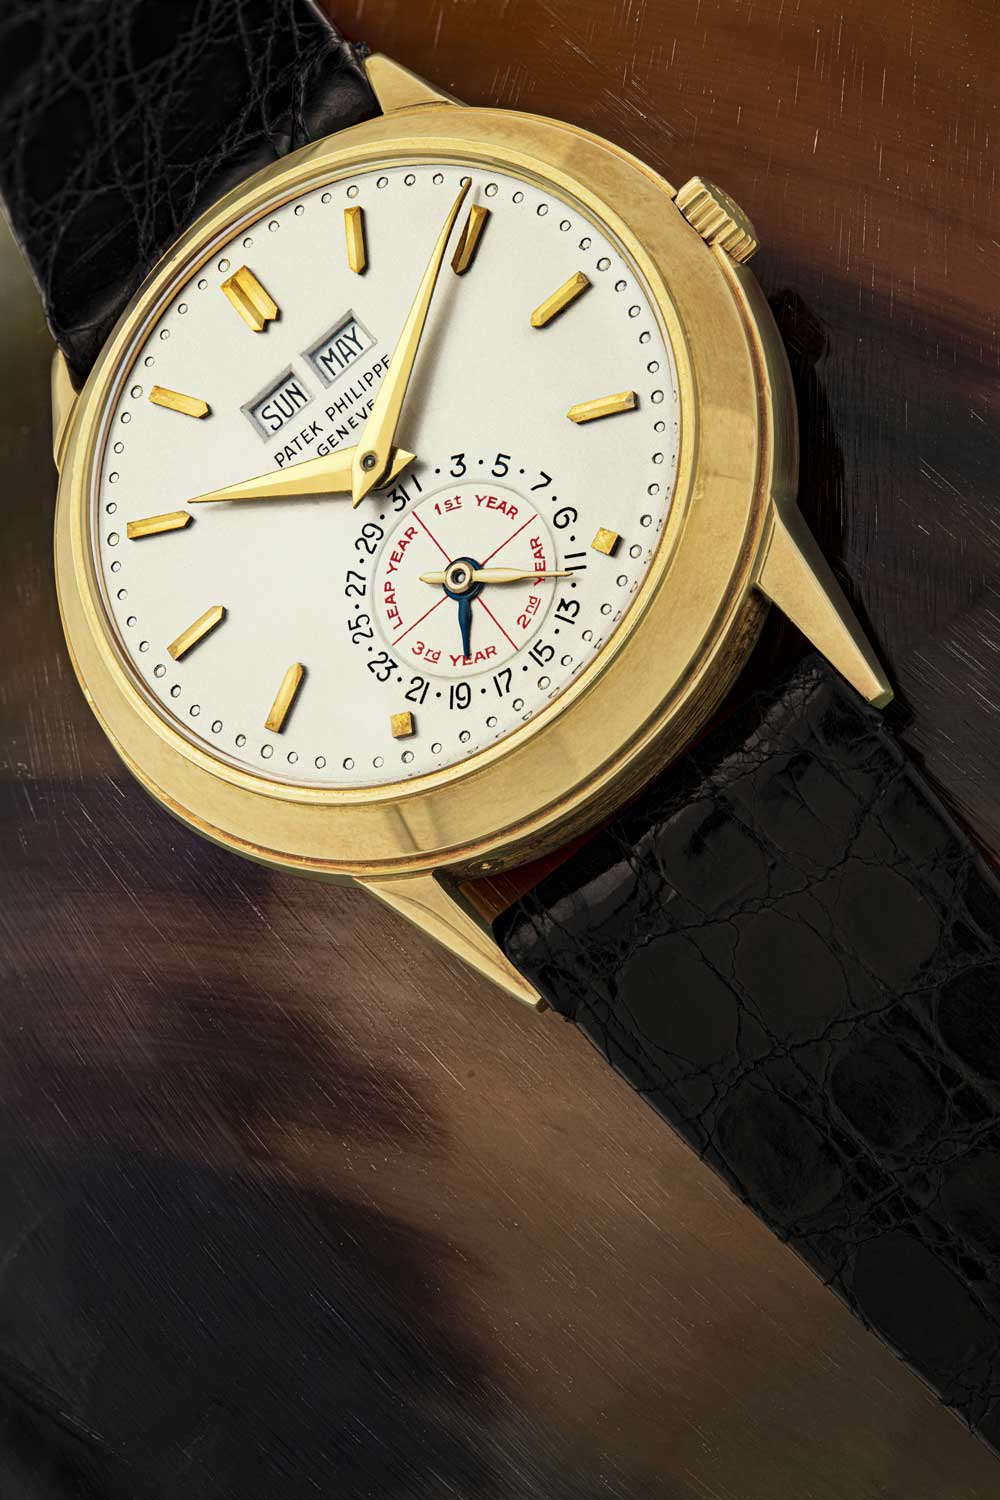 """Patek Philippe ref. 3448 """"Alan Banbery"""", which was specially modified in 1975 as a unique piece for presentation to Alan Banbery sold for USD 3.7 million at Christie's this year"""